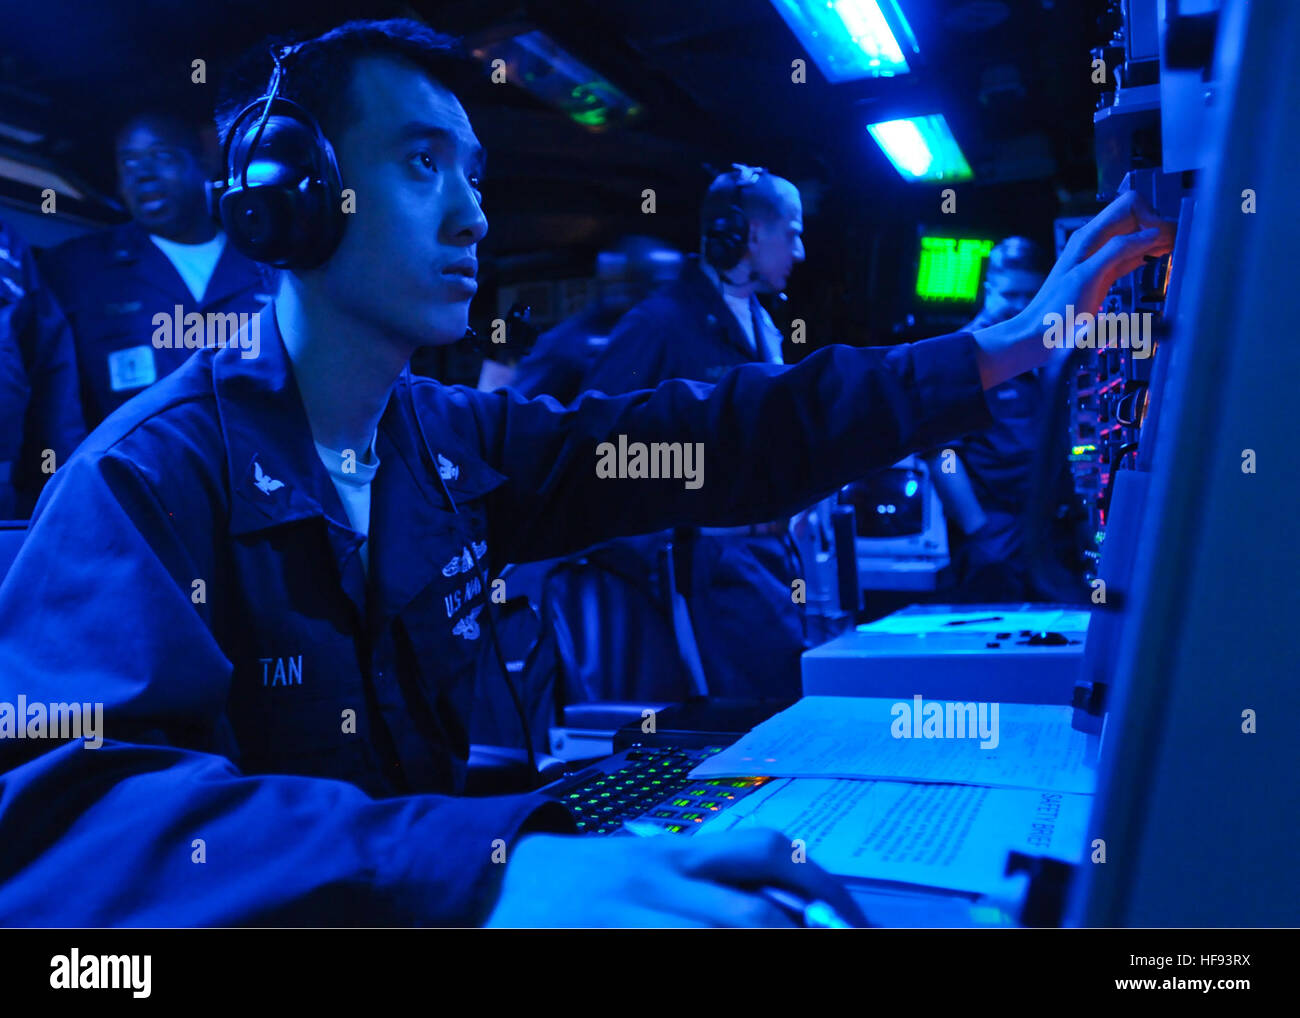 us navy operations specialist 3rd class eric tan stands watch in the combat information center aboard the forward deployed amphibious assault ship uss